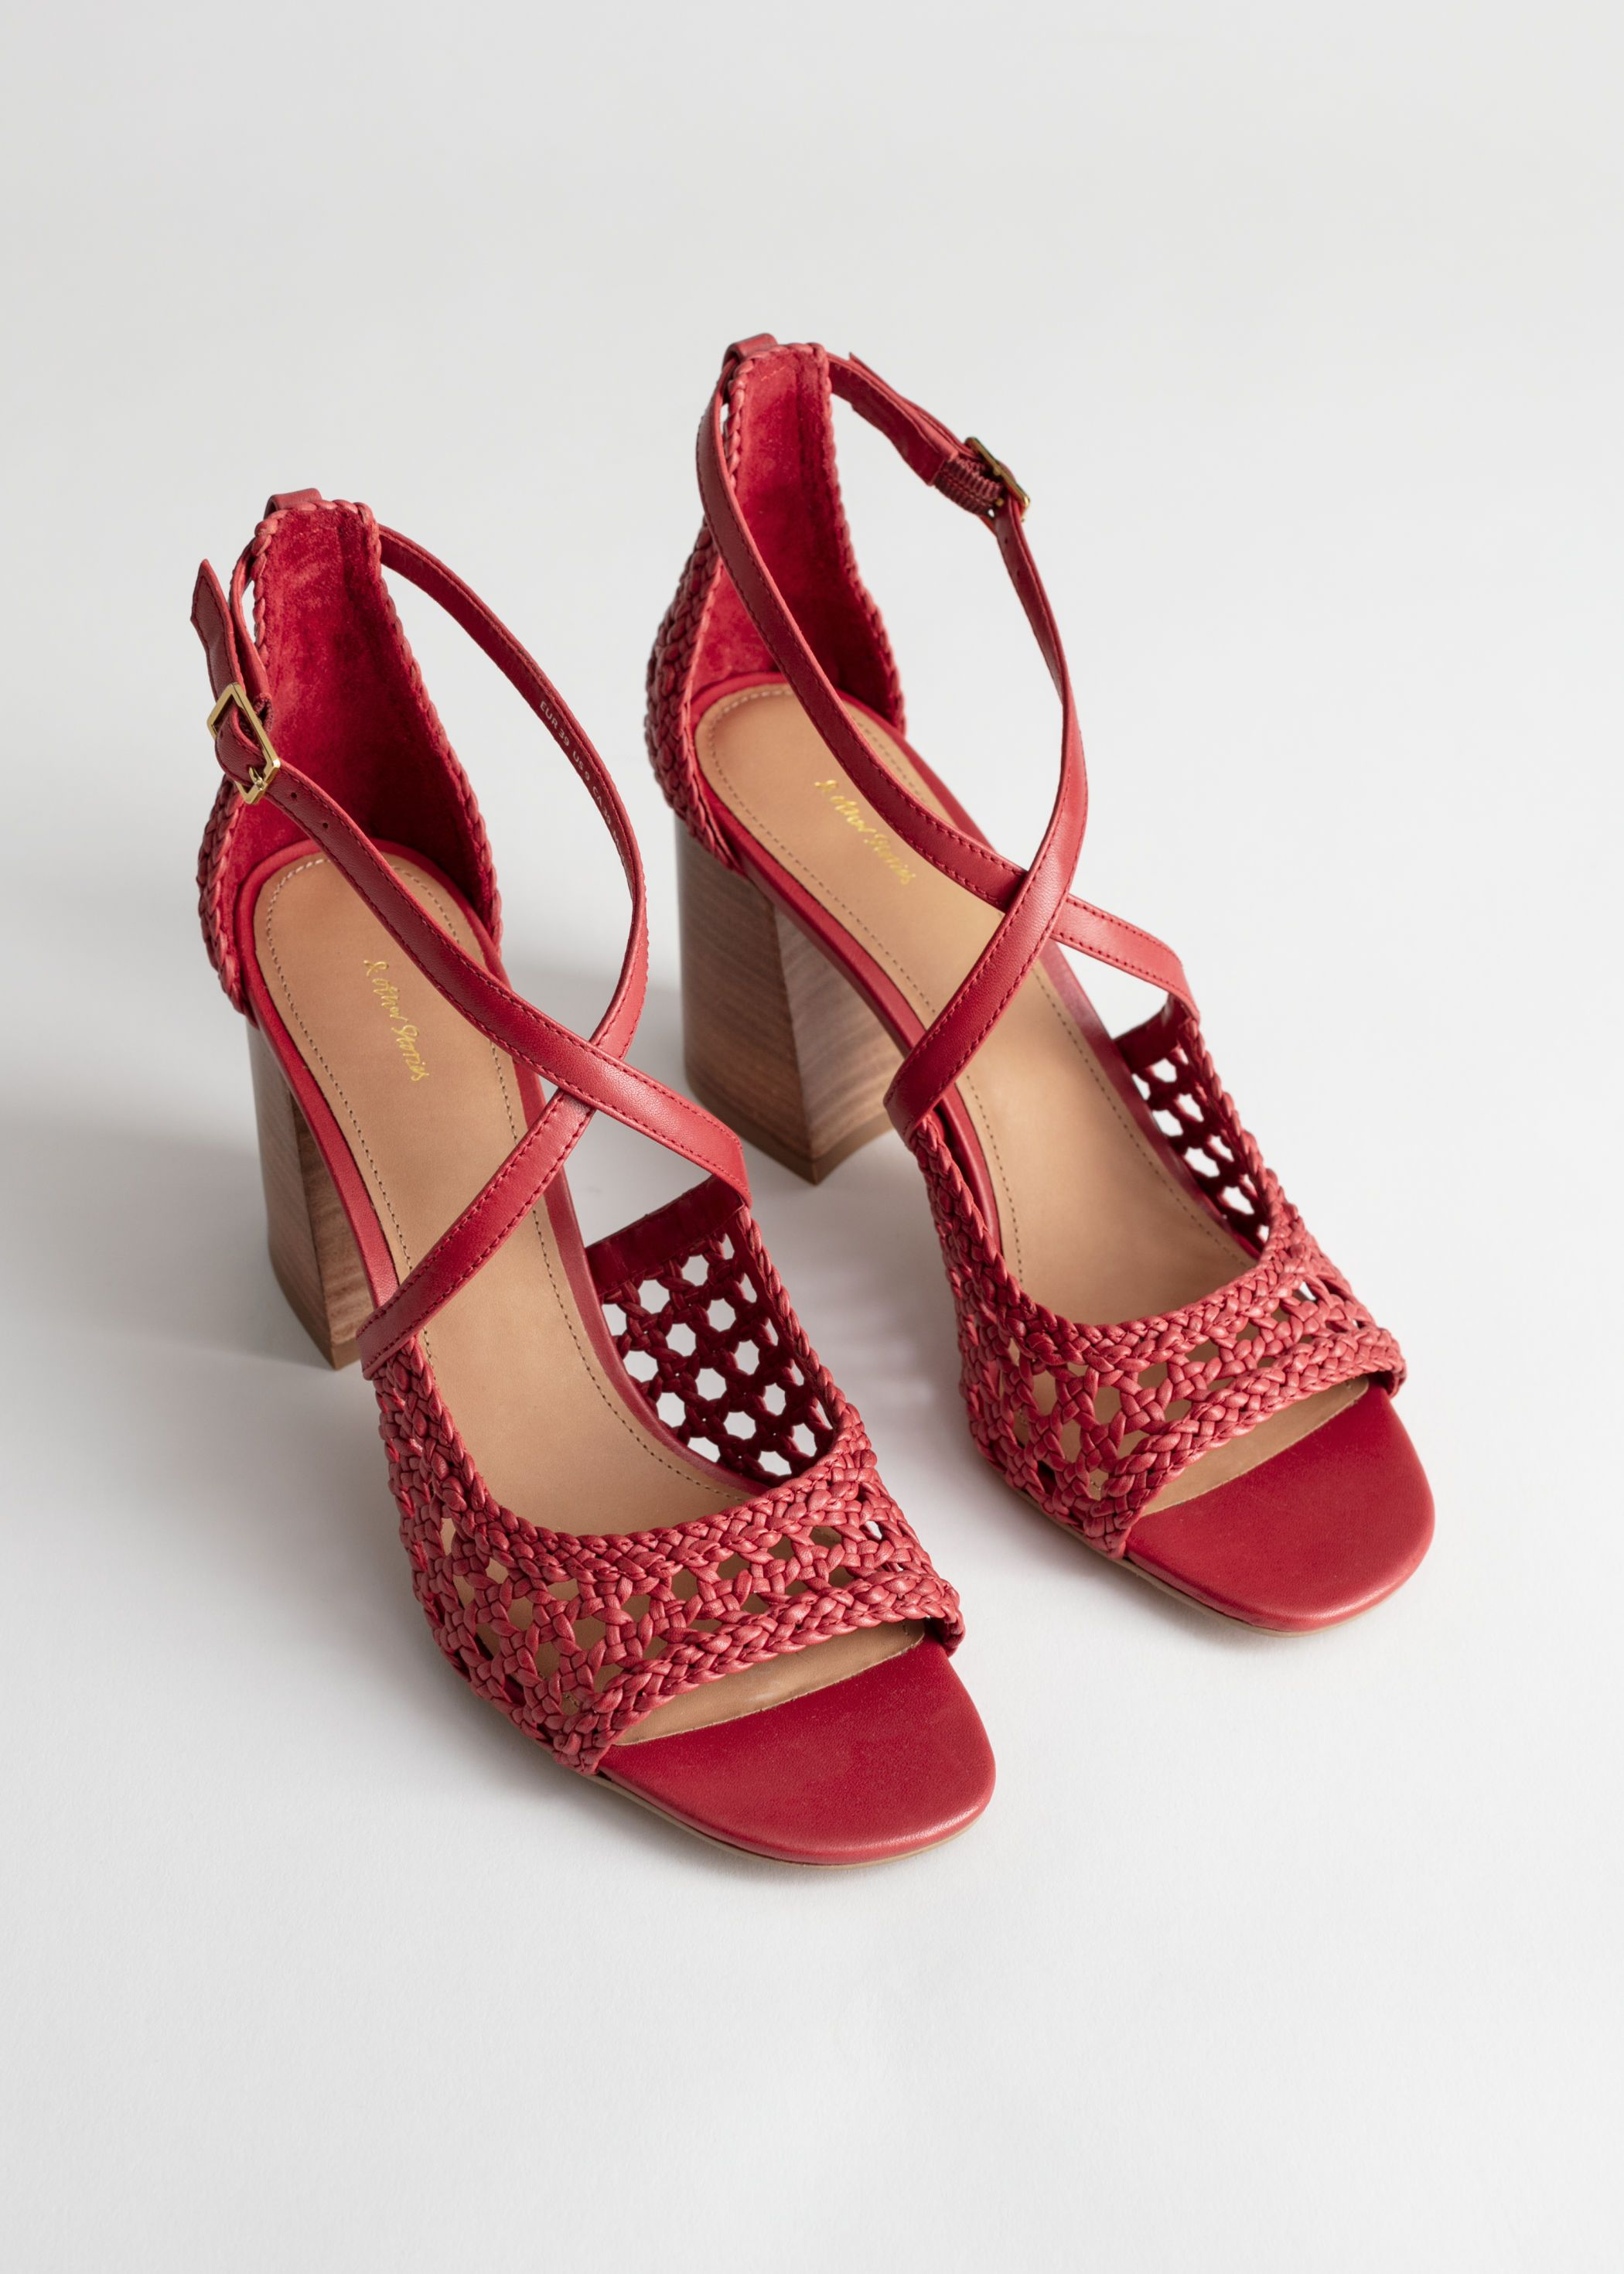 d2180077a425b Woven Leather Heeled Sandals in 2019 | cusual summer | Leather heels ...